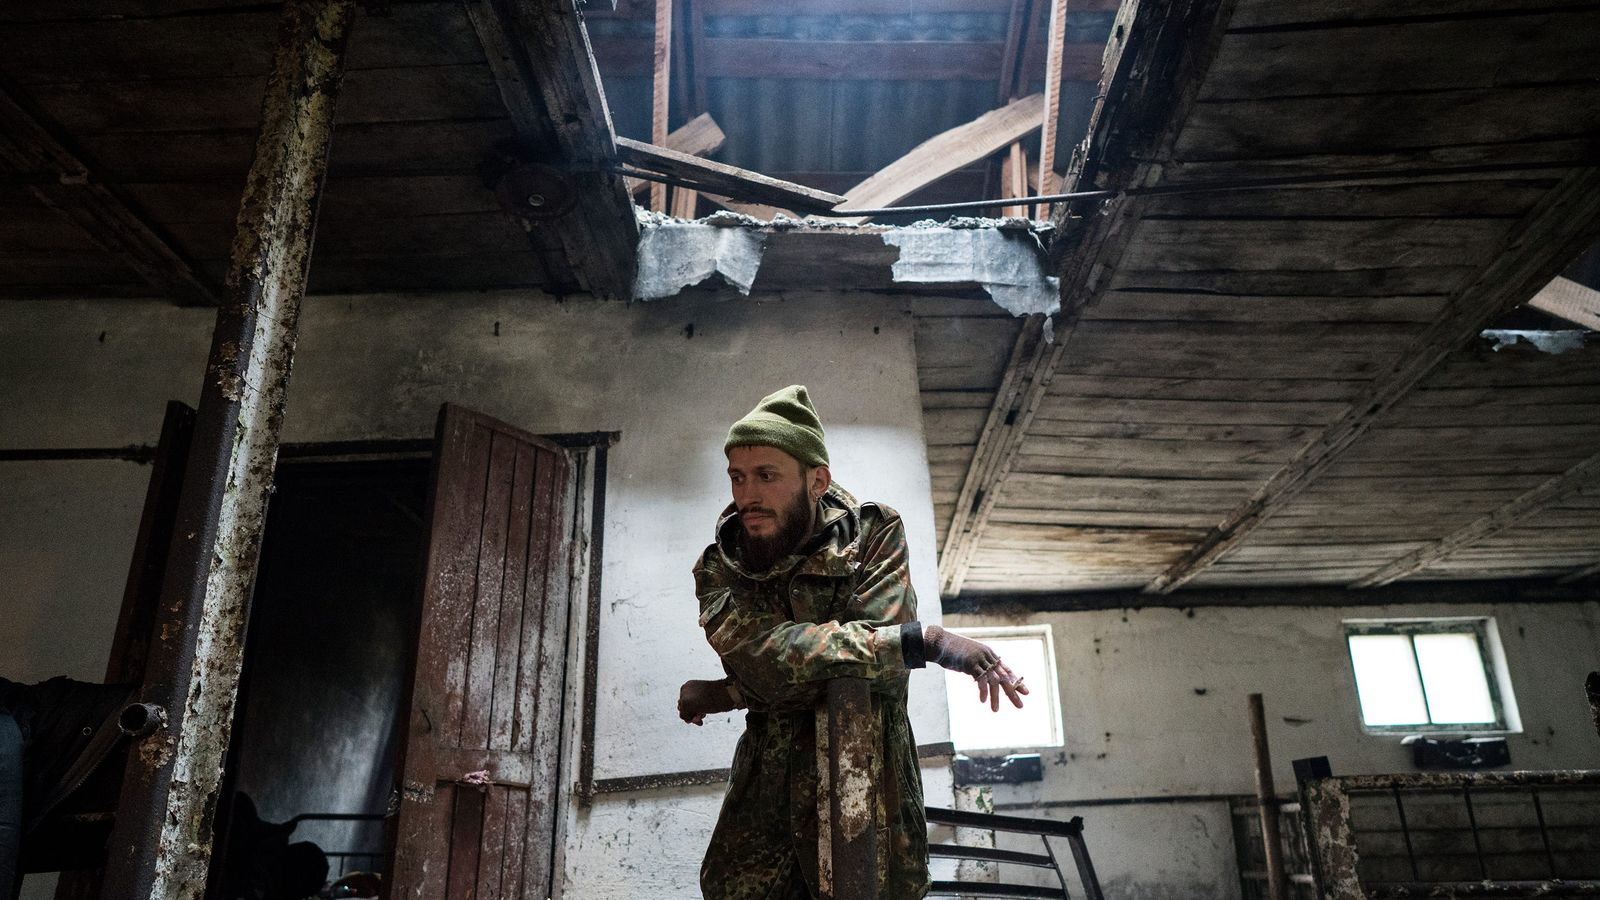 """Knyazev (nicknamed JimmSide), rests in an abandoned pig shed on the journey to Pripyat. """"I'm attracted ..."""